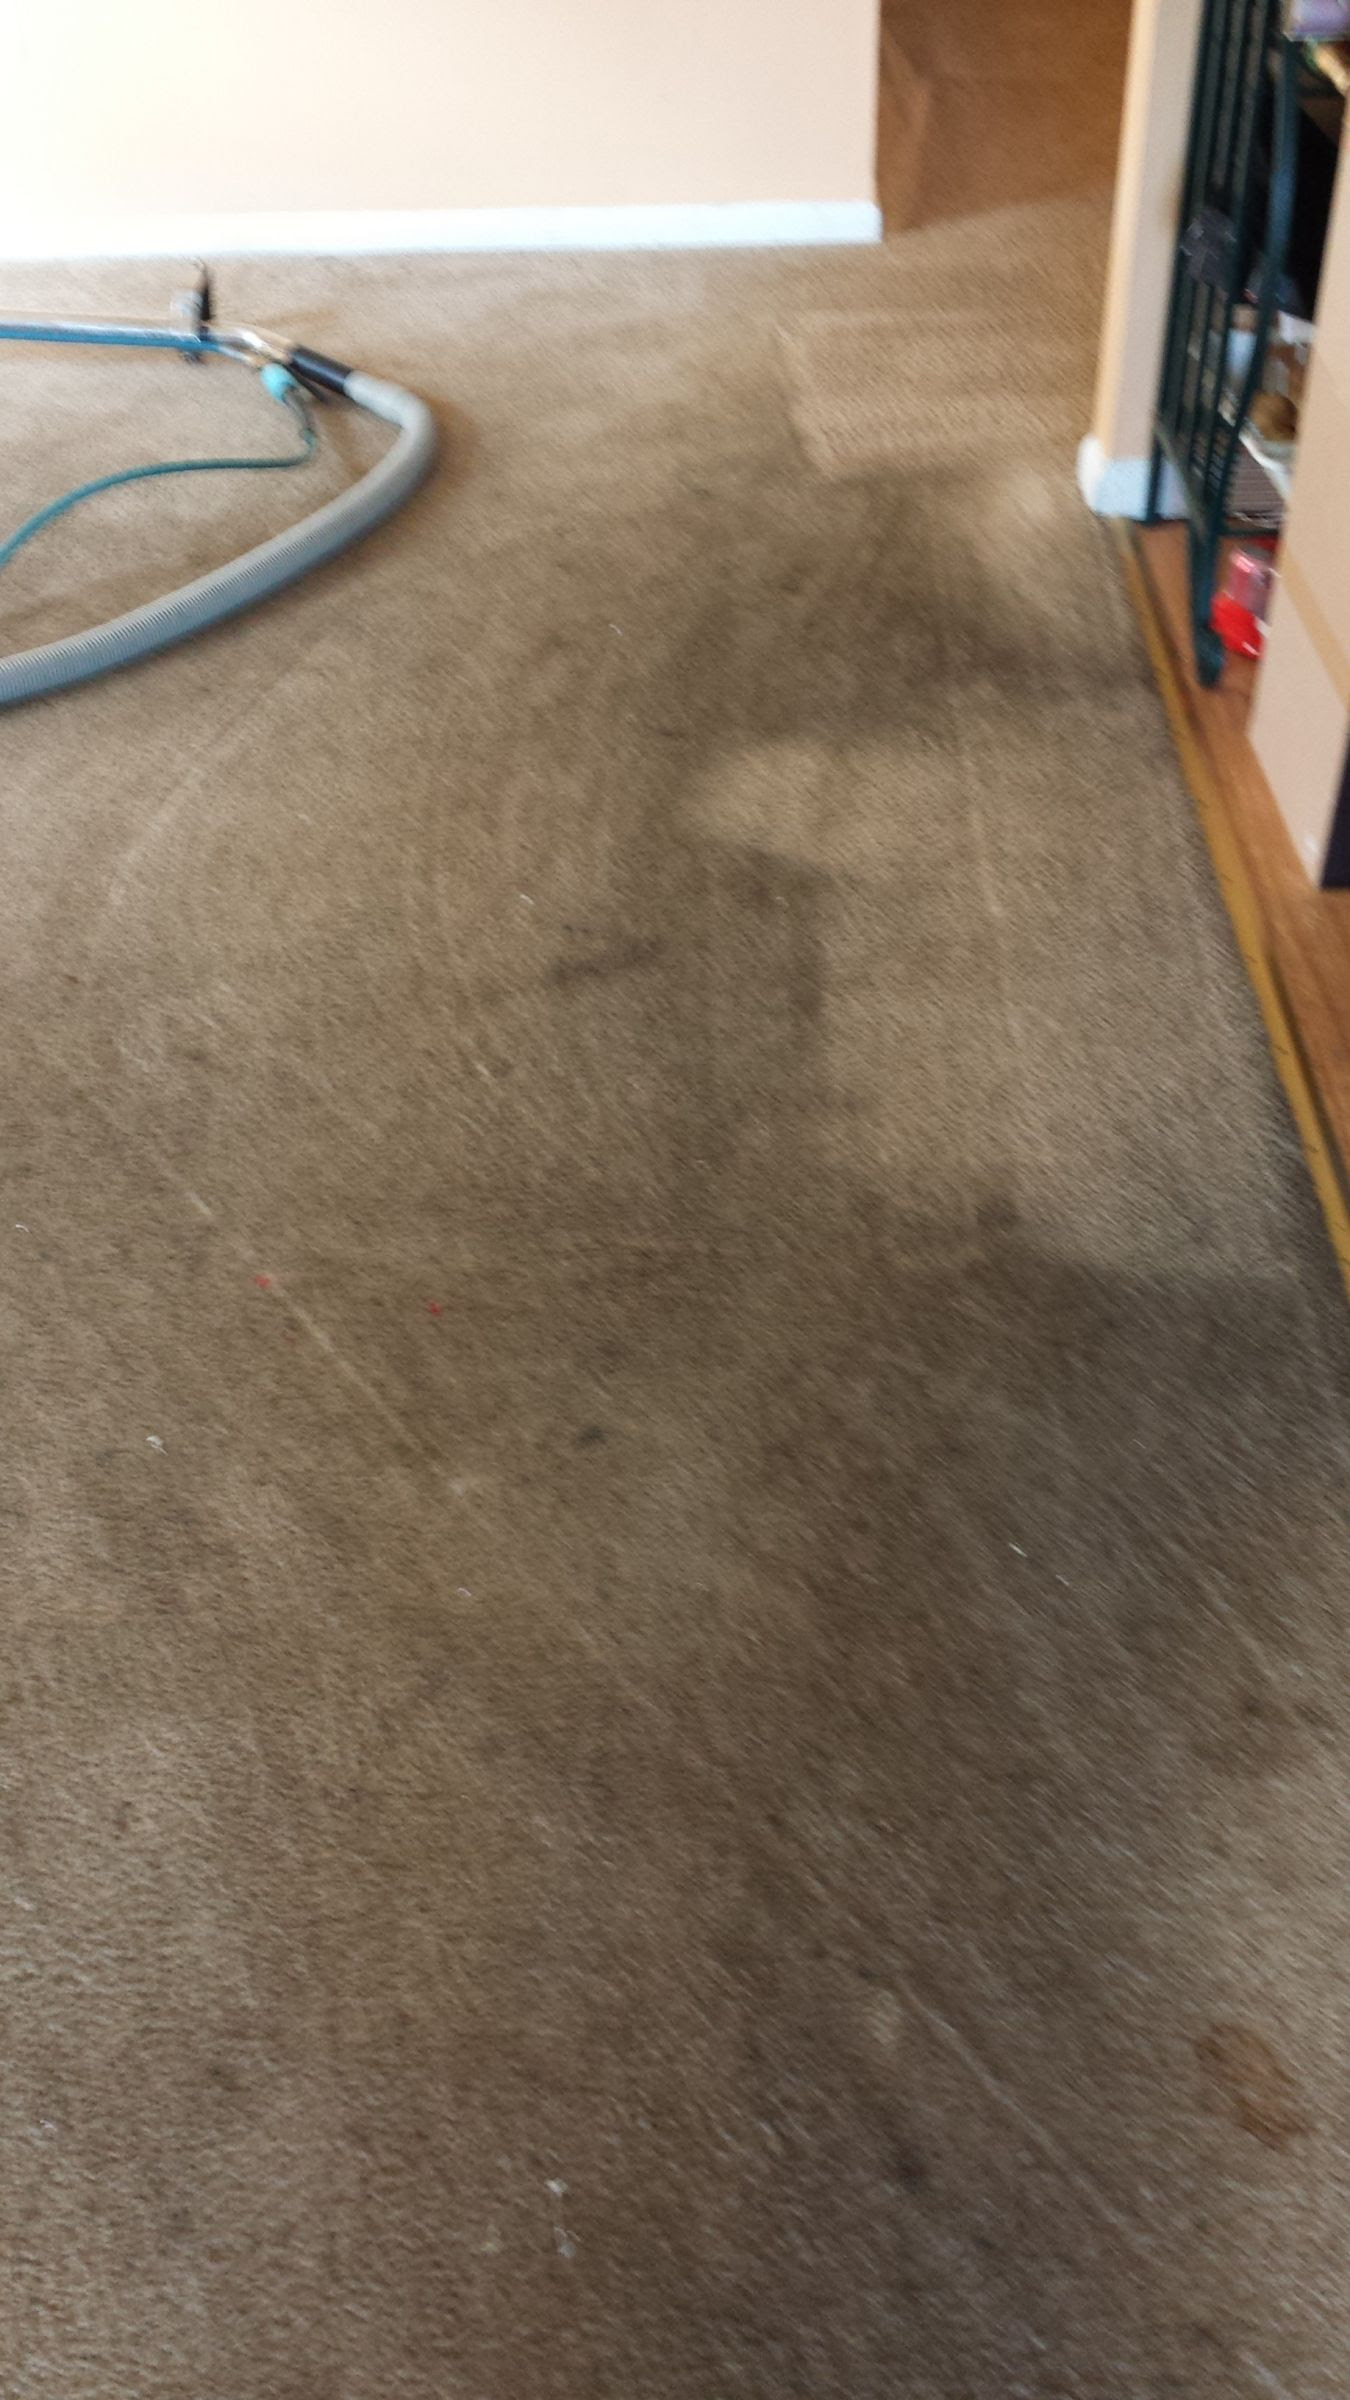 Best Carpet Cleaning In Cherry Hill Nj